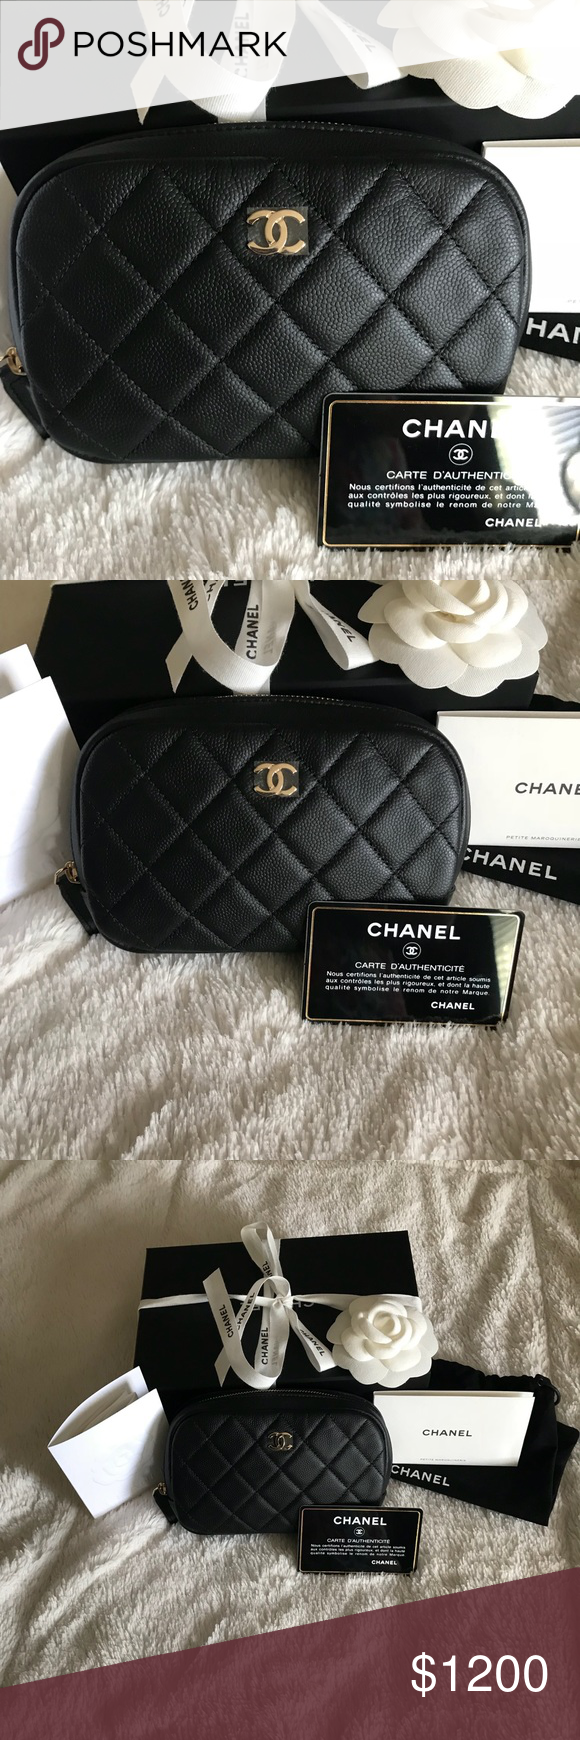 9b366c154e82 Chanel O Case Black caviar leather with gold hw Brand new in box. 100%  Authentic. Comes with box  dust bag ribbon care booklets  camelia.